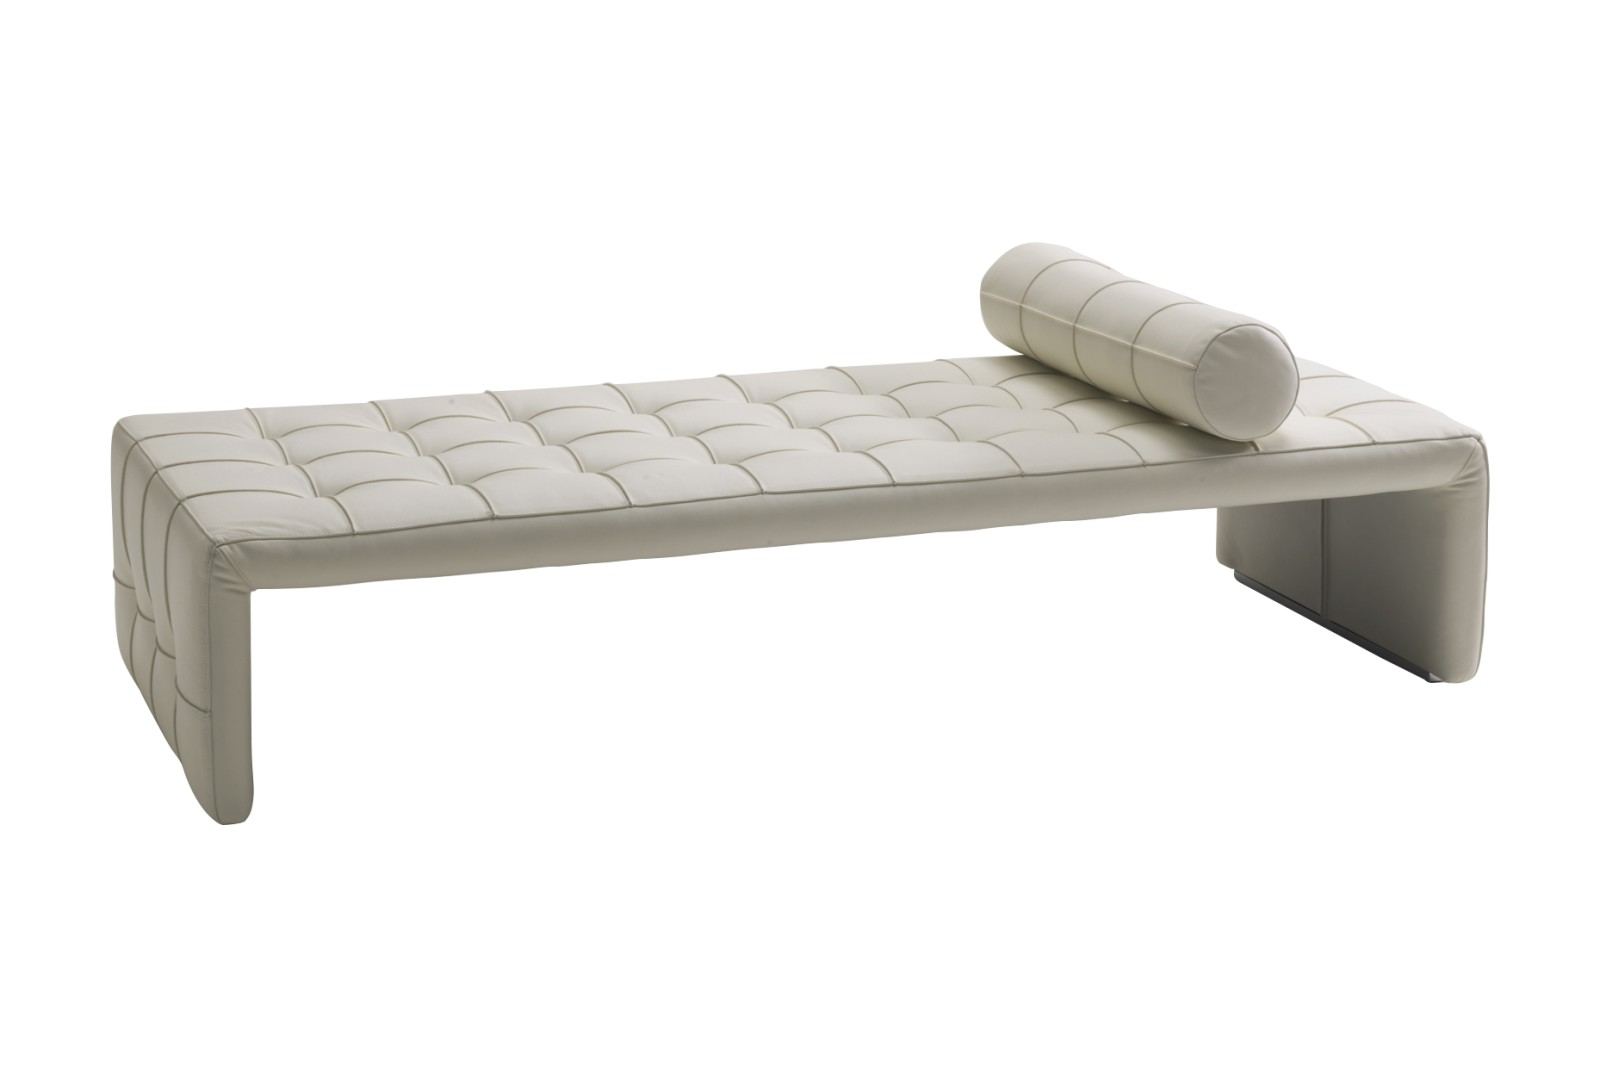 Scarlett Bench, Upholstered Cuoio Corda, 72cm